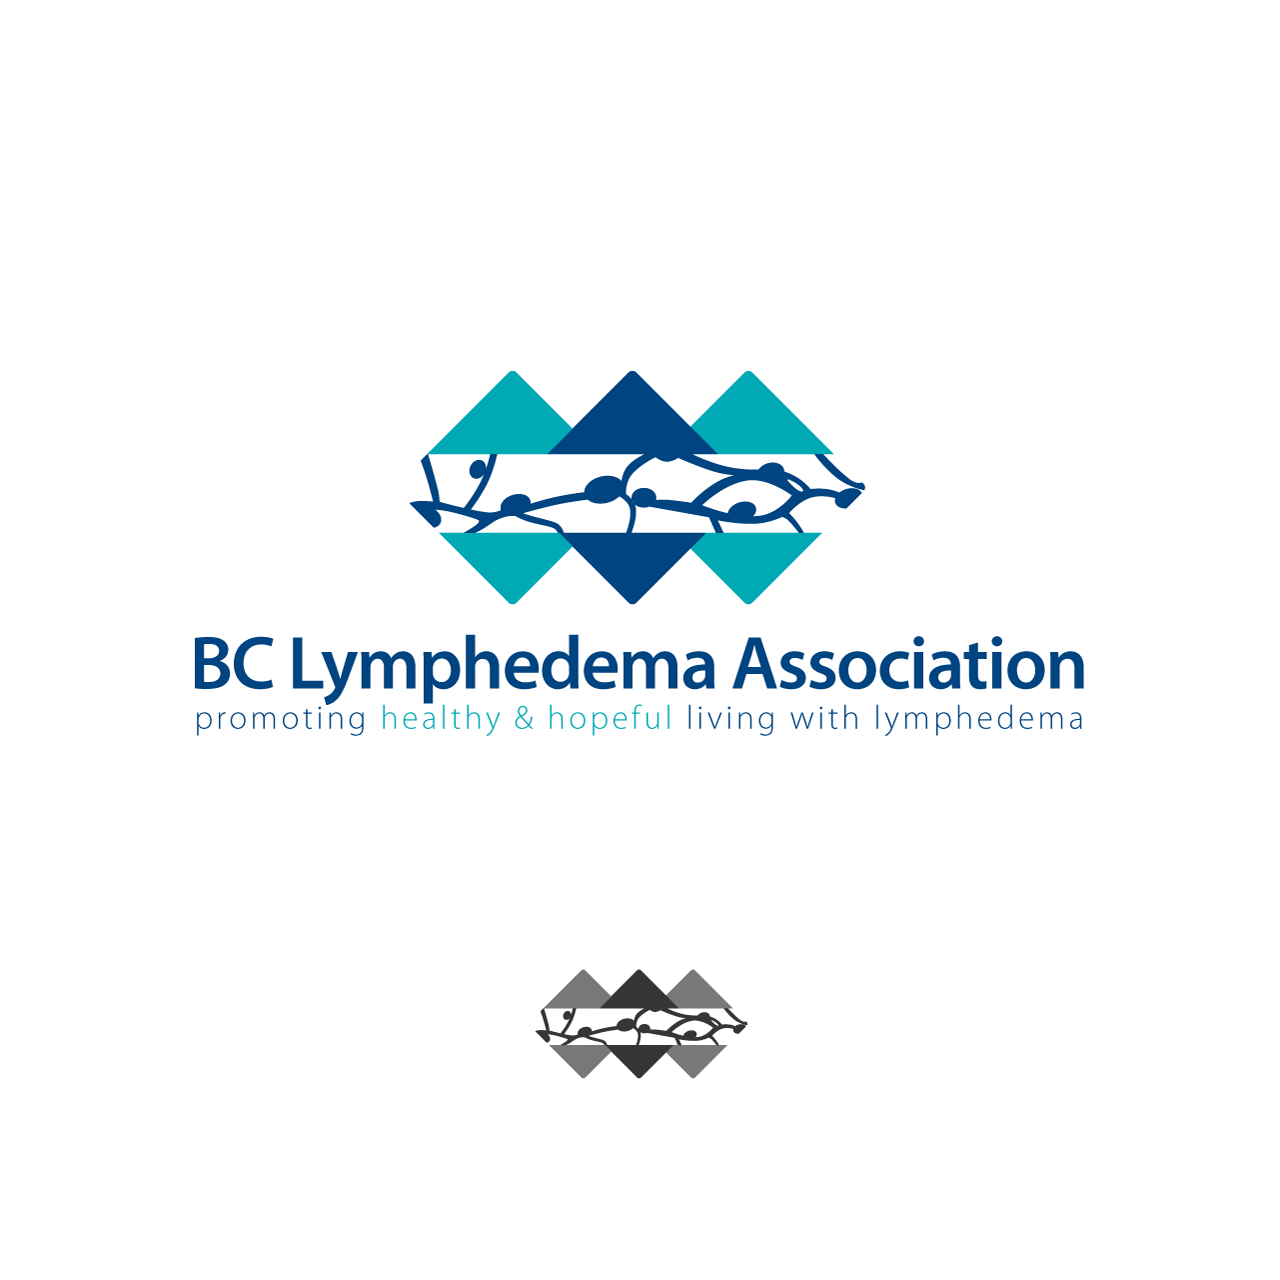 Logo Design by umxca - Entry No. 82 in the Logo Design Contest BC Lymphedema Association.